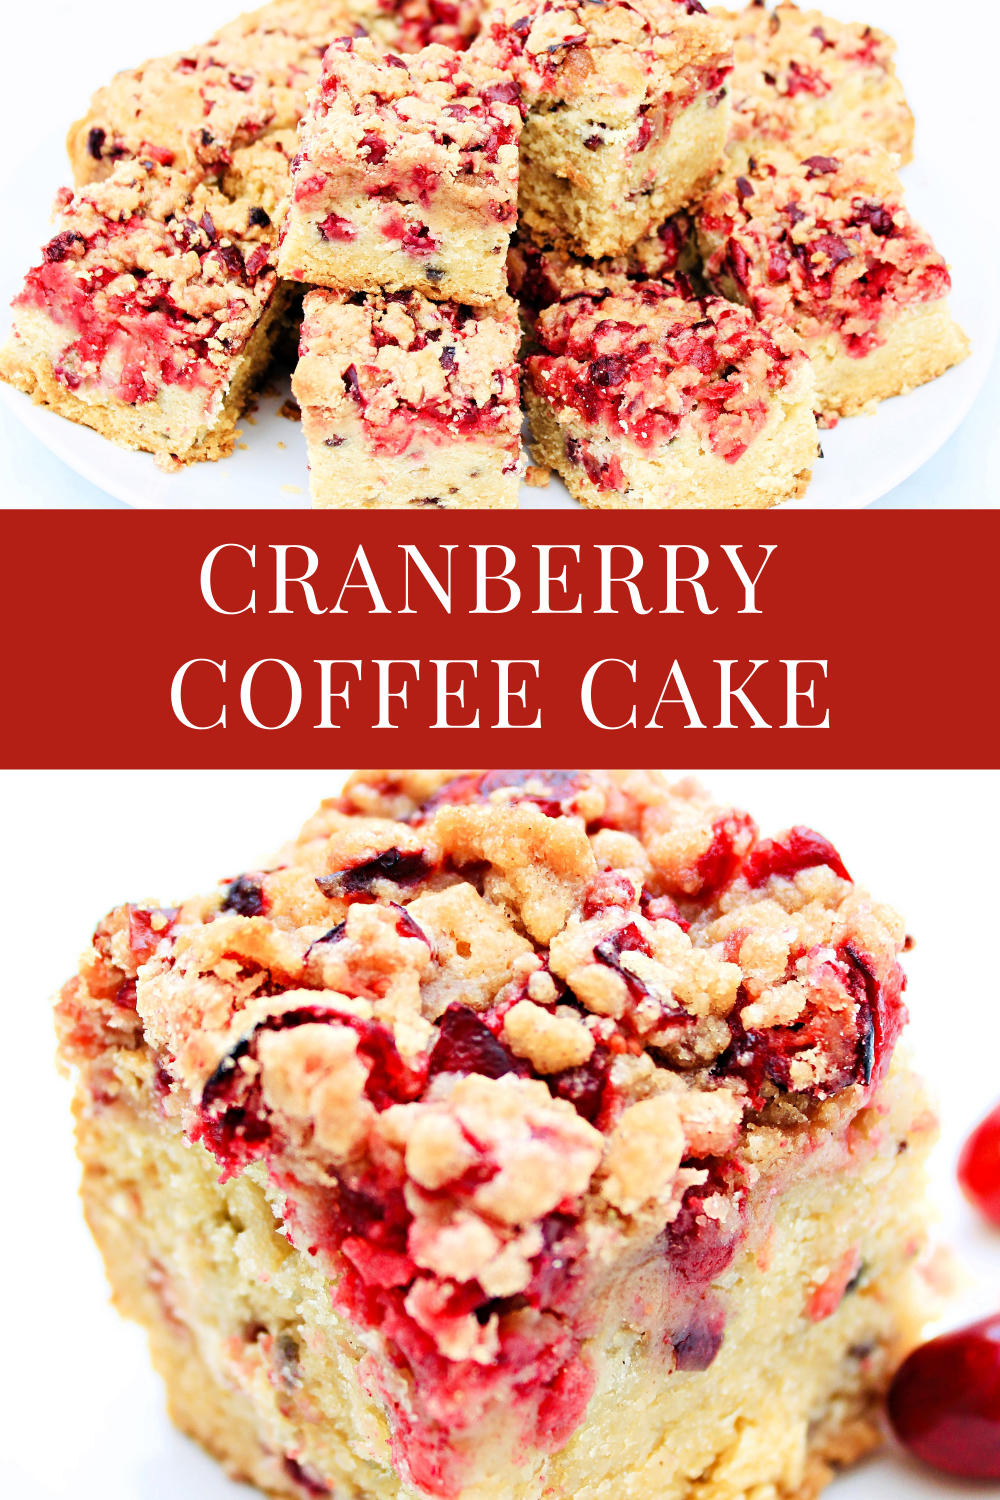 Cranberry Coffee Cake ~ A light vanilla coffee cake made with fresh, tart cranberries and a cranberry streusel topping. Perfect for holiday brunches, baby showers, and coffee or tea time at home! via @thiswifecooks